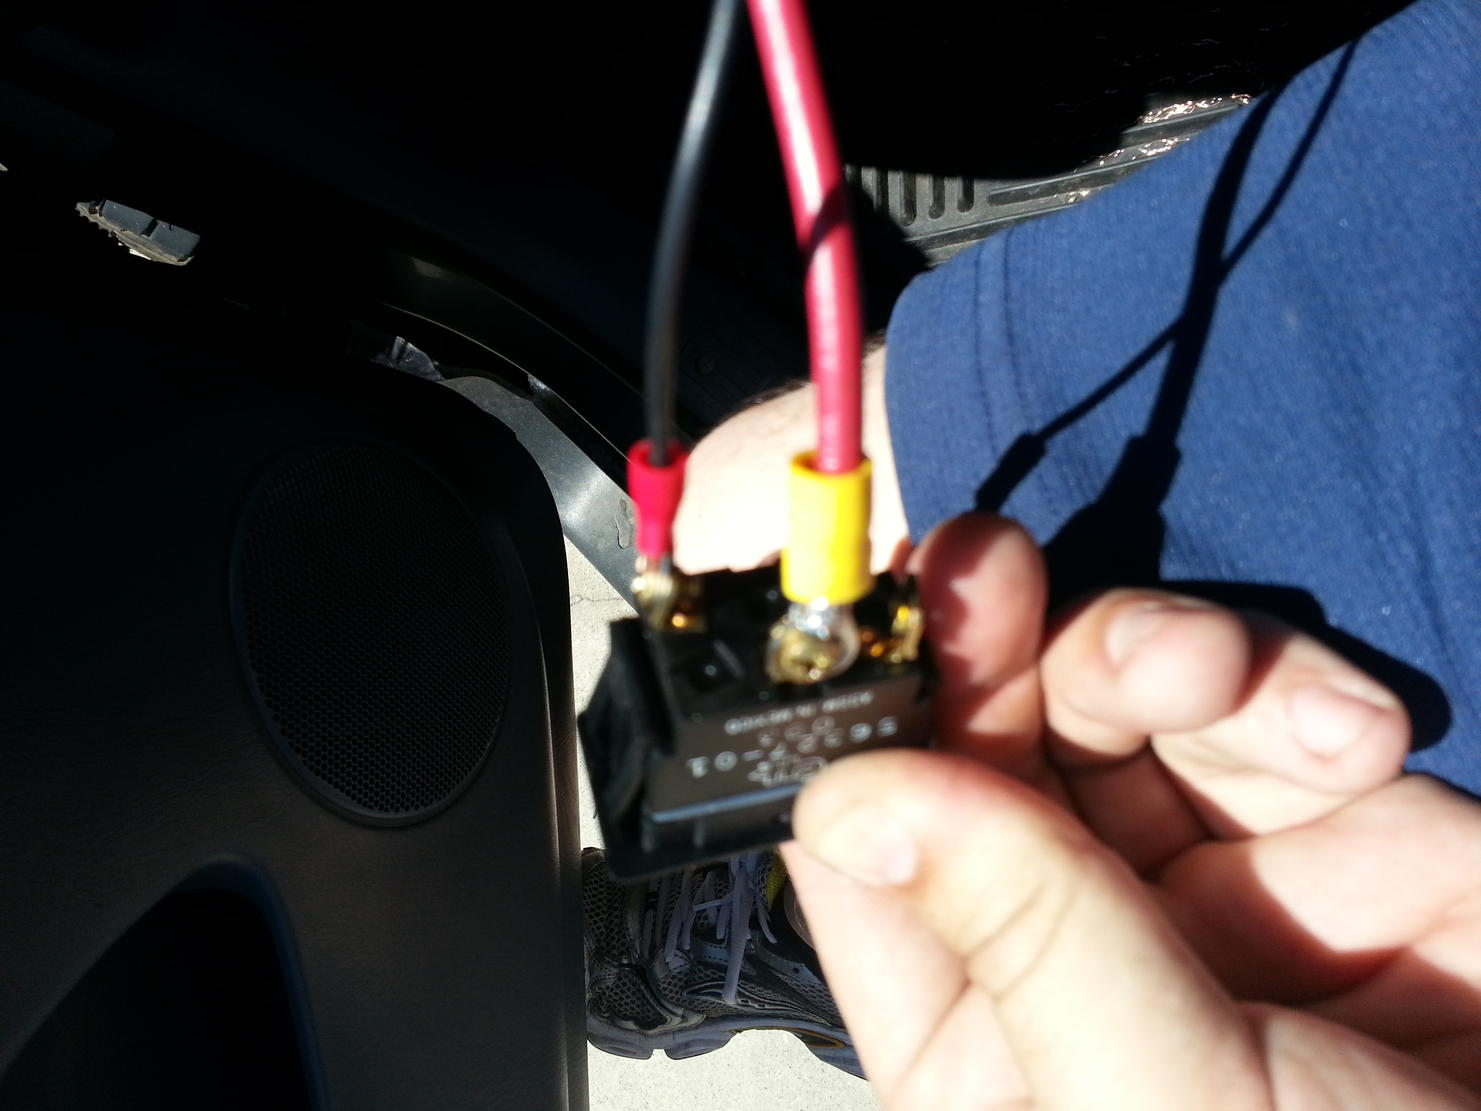 Accesory fuse box install - Toyota 4Runner Forum - Largest 4Runner on